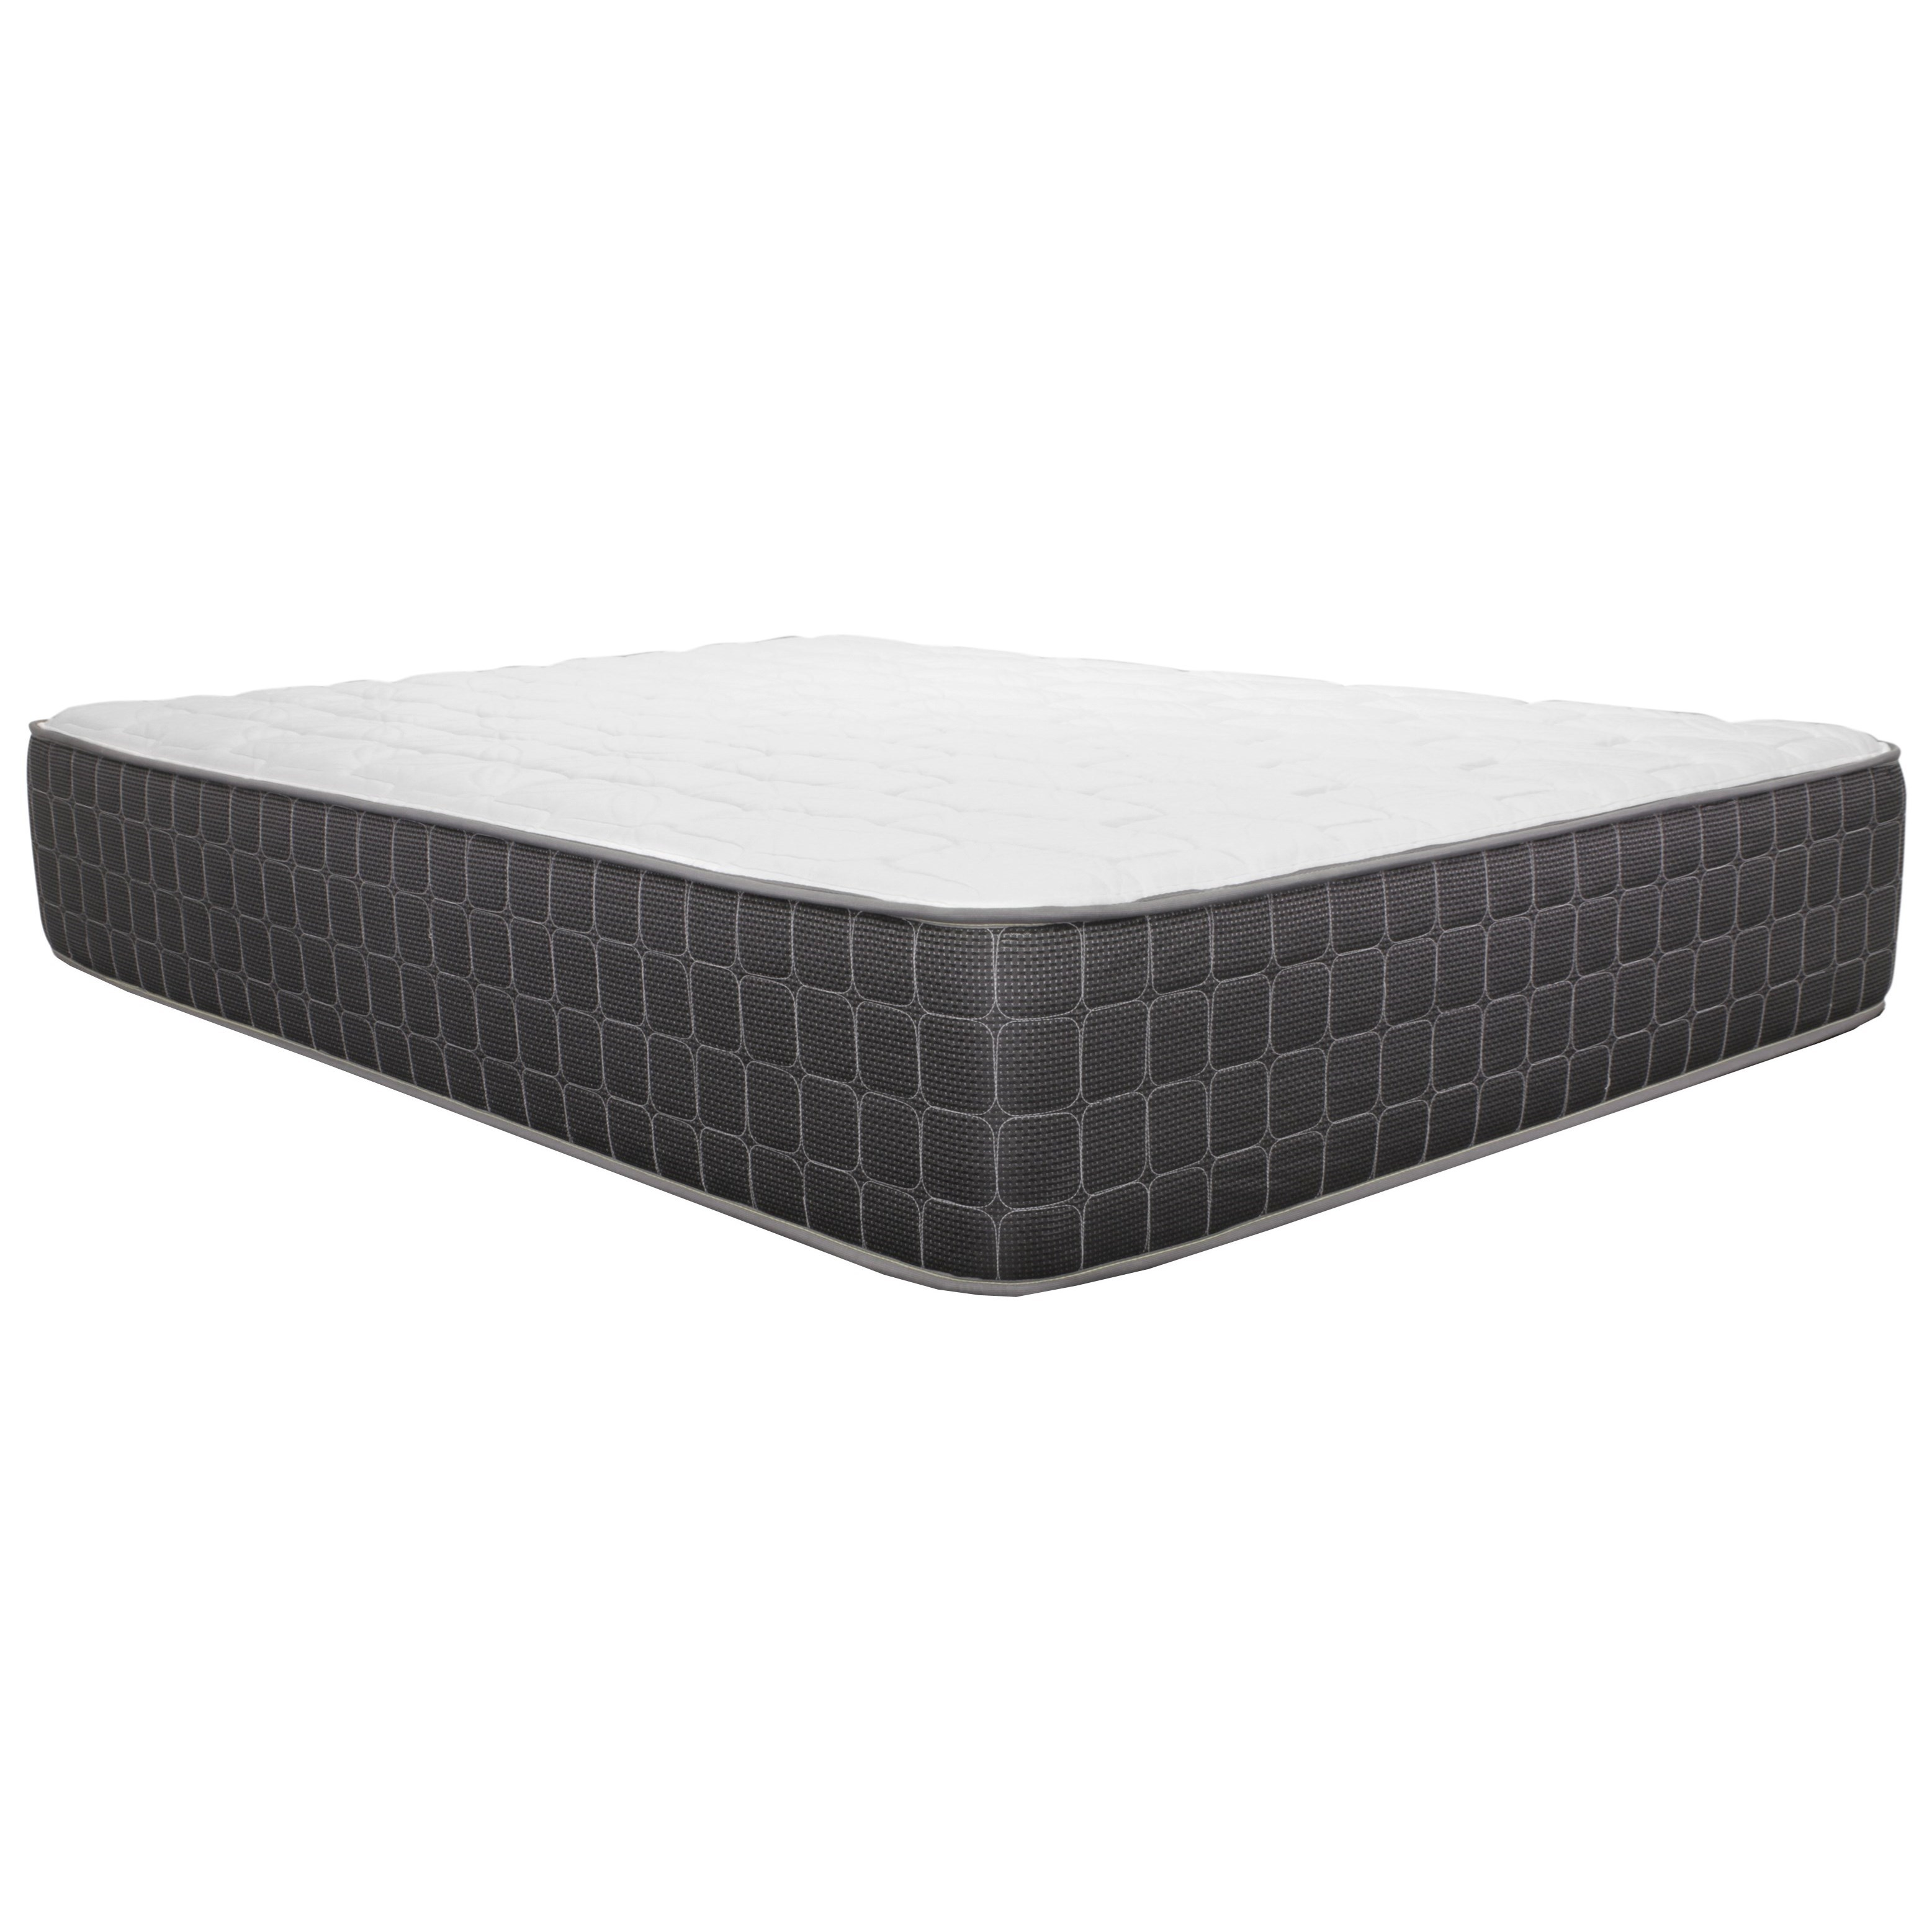 Corsicana 1705PR Queen Plush Mattress Furniture